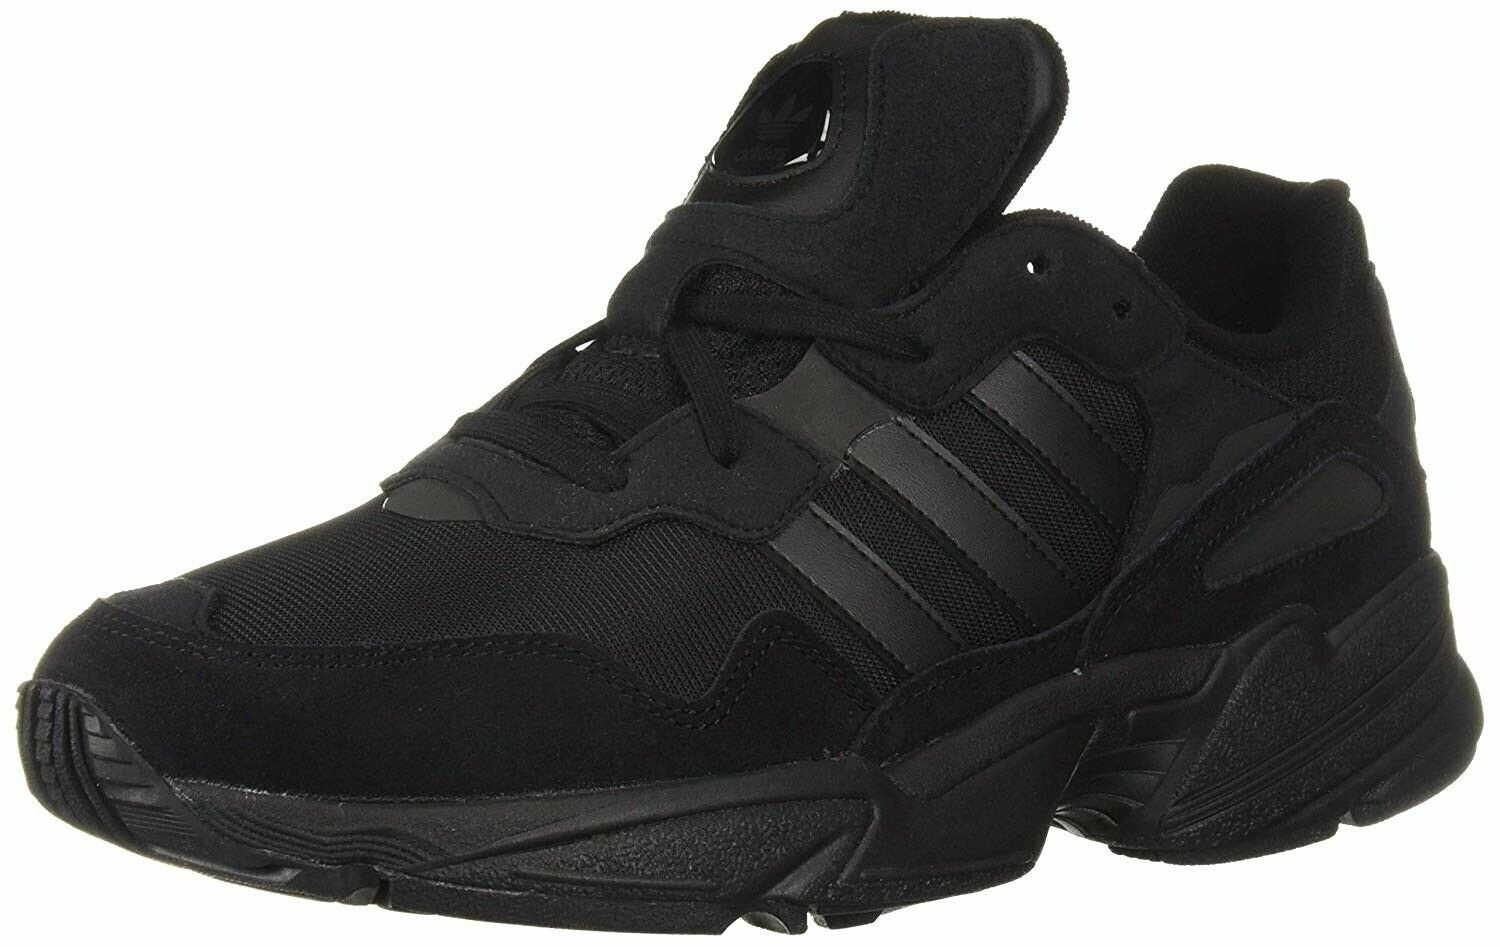 Adidas Yung-96 Men's Running Trail shoes F35019